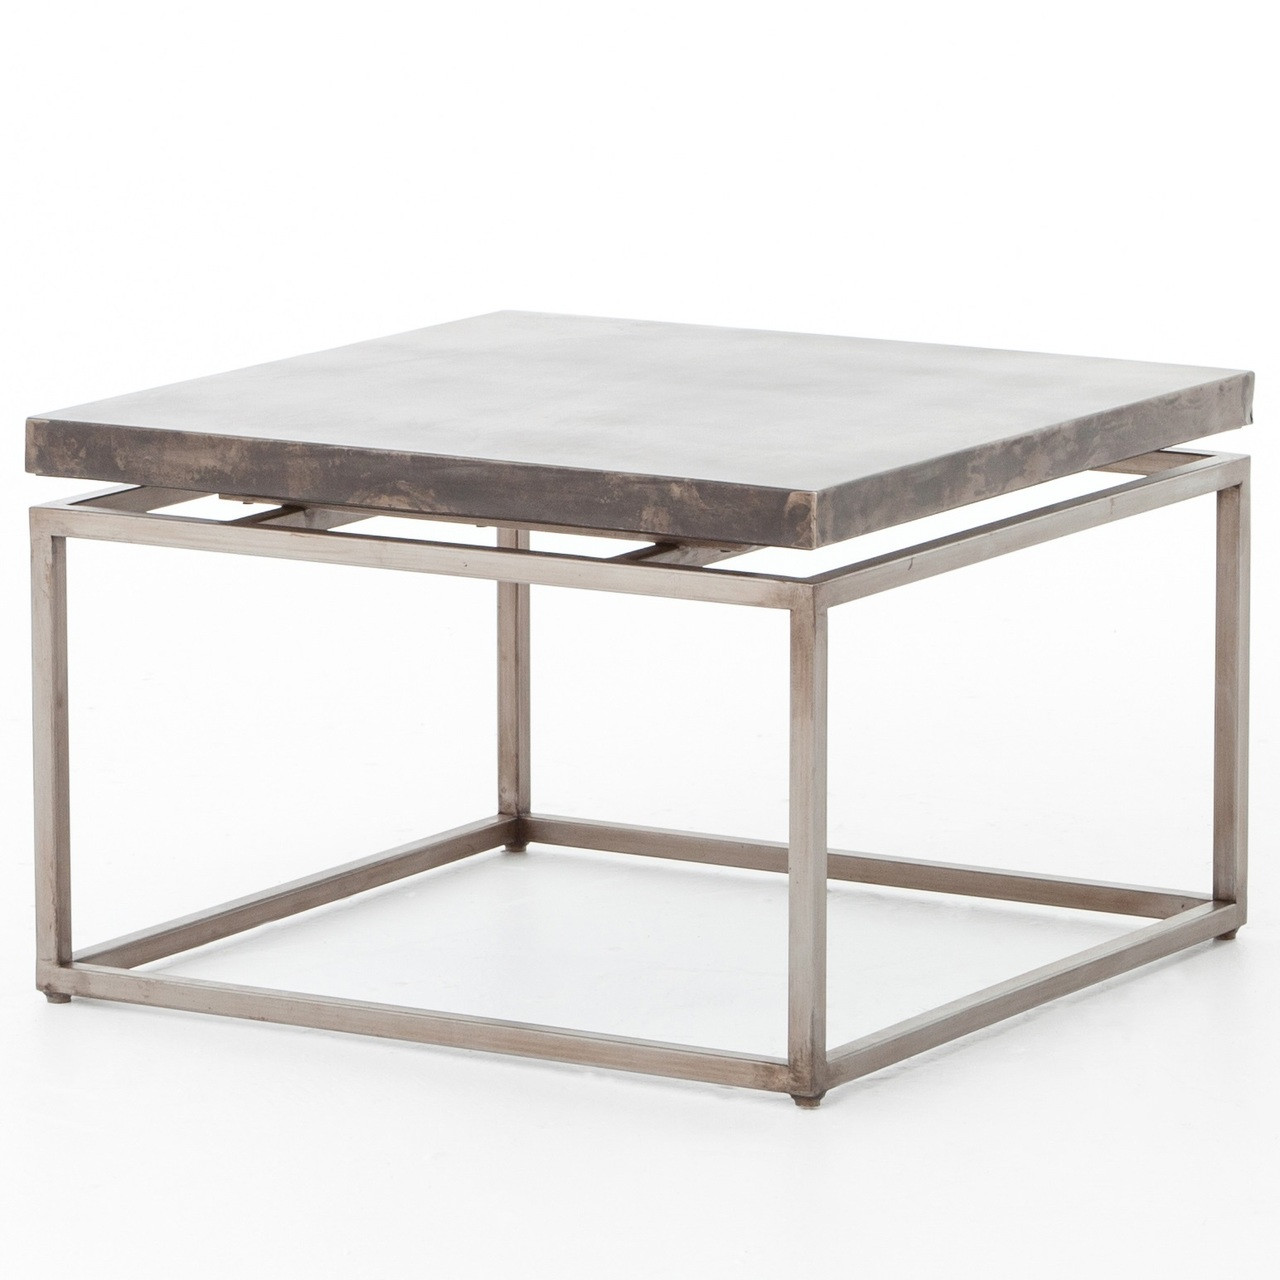 Roman Box Frame Industrial Iron Square Coffee Table | Zin Home